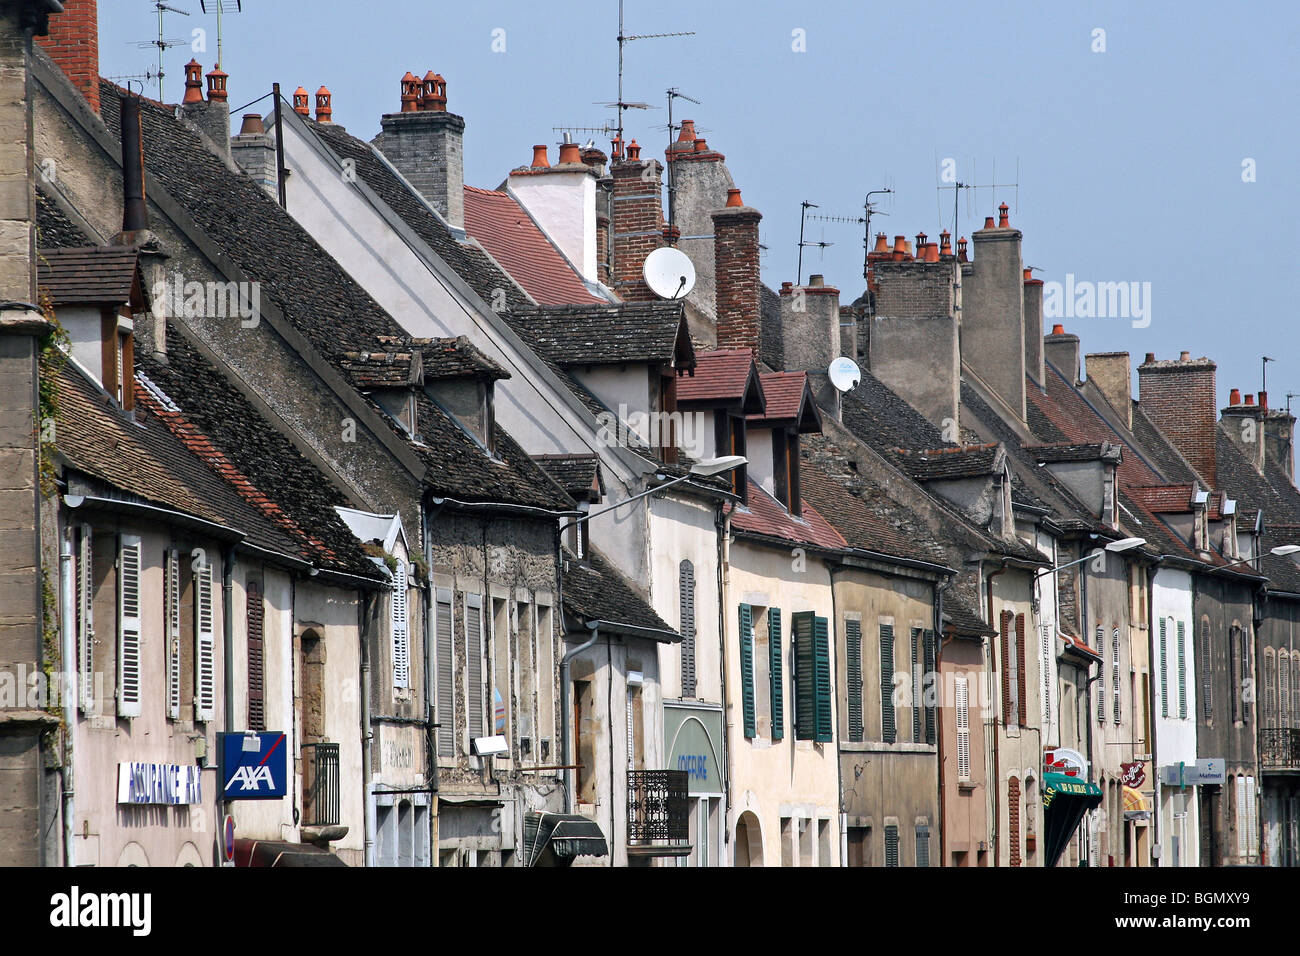 Houses in the historical centre of Beaune, France - Stock Image